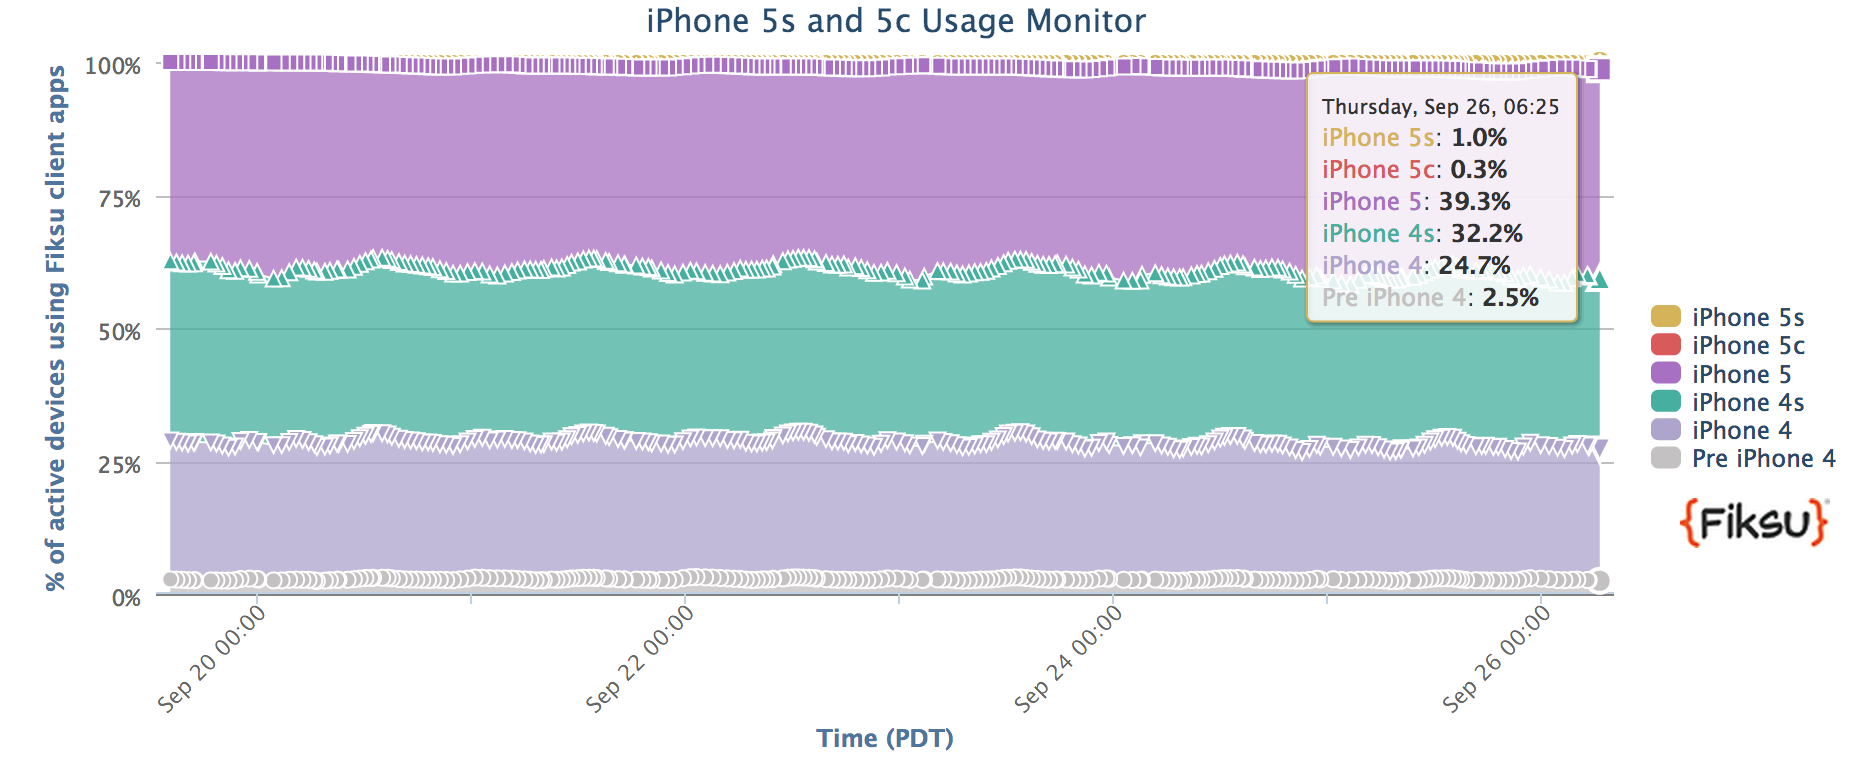 iPhone5s-5c-usage